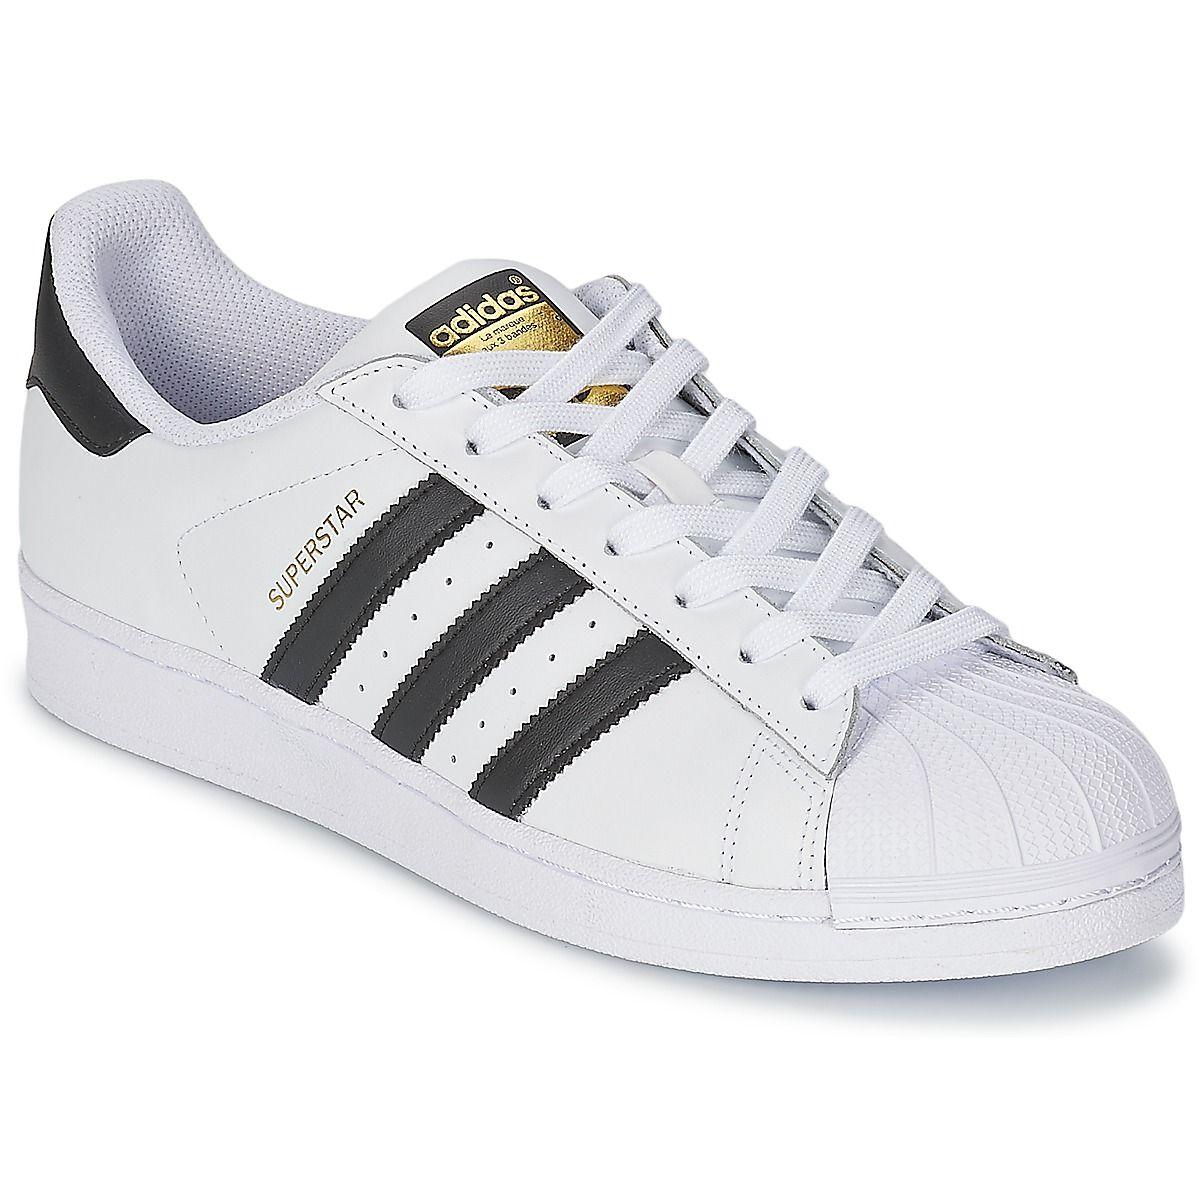 Chaussure Adidas All Star